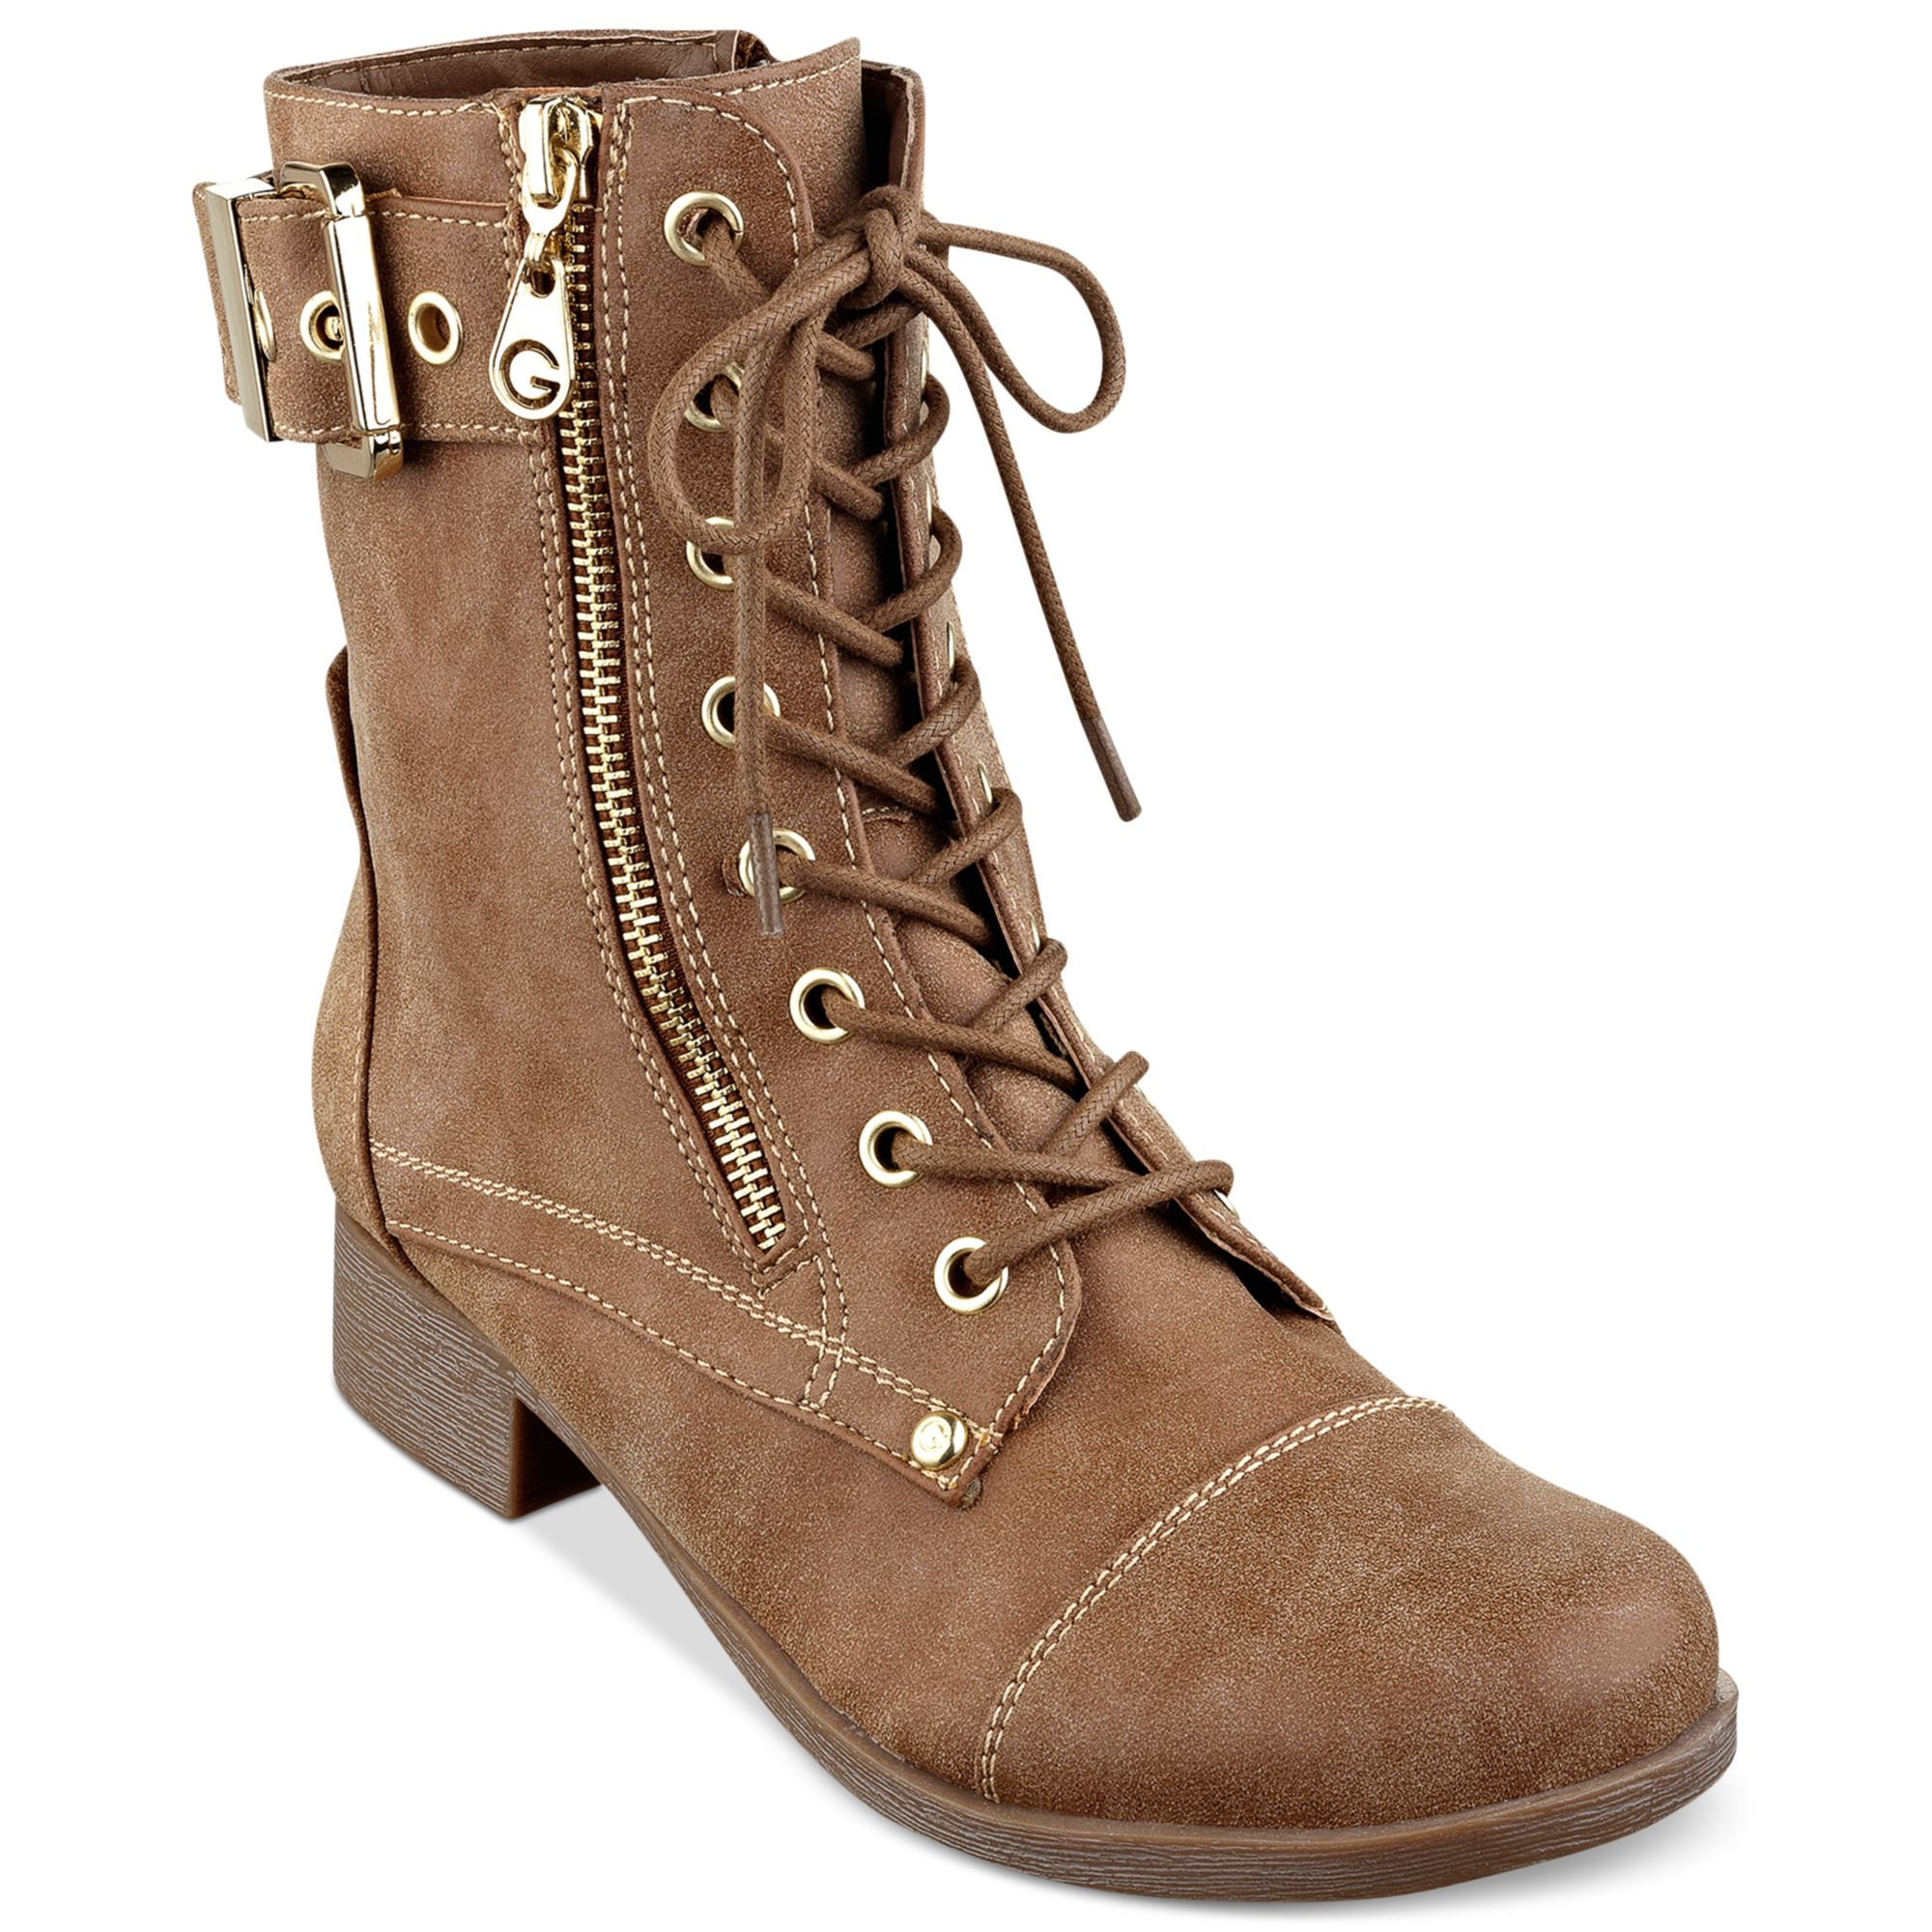 Guess Combat Boots For Women Excellent Purple Guess